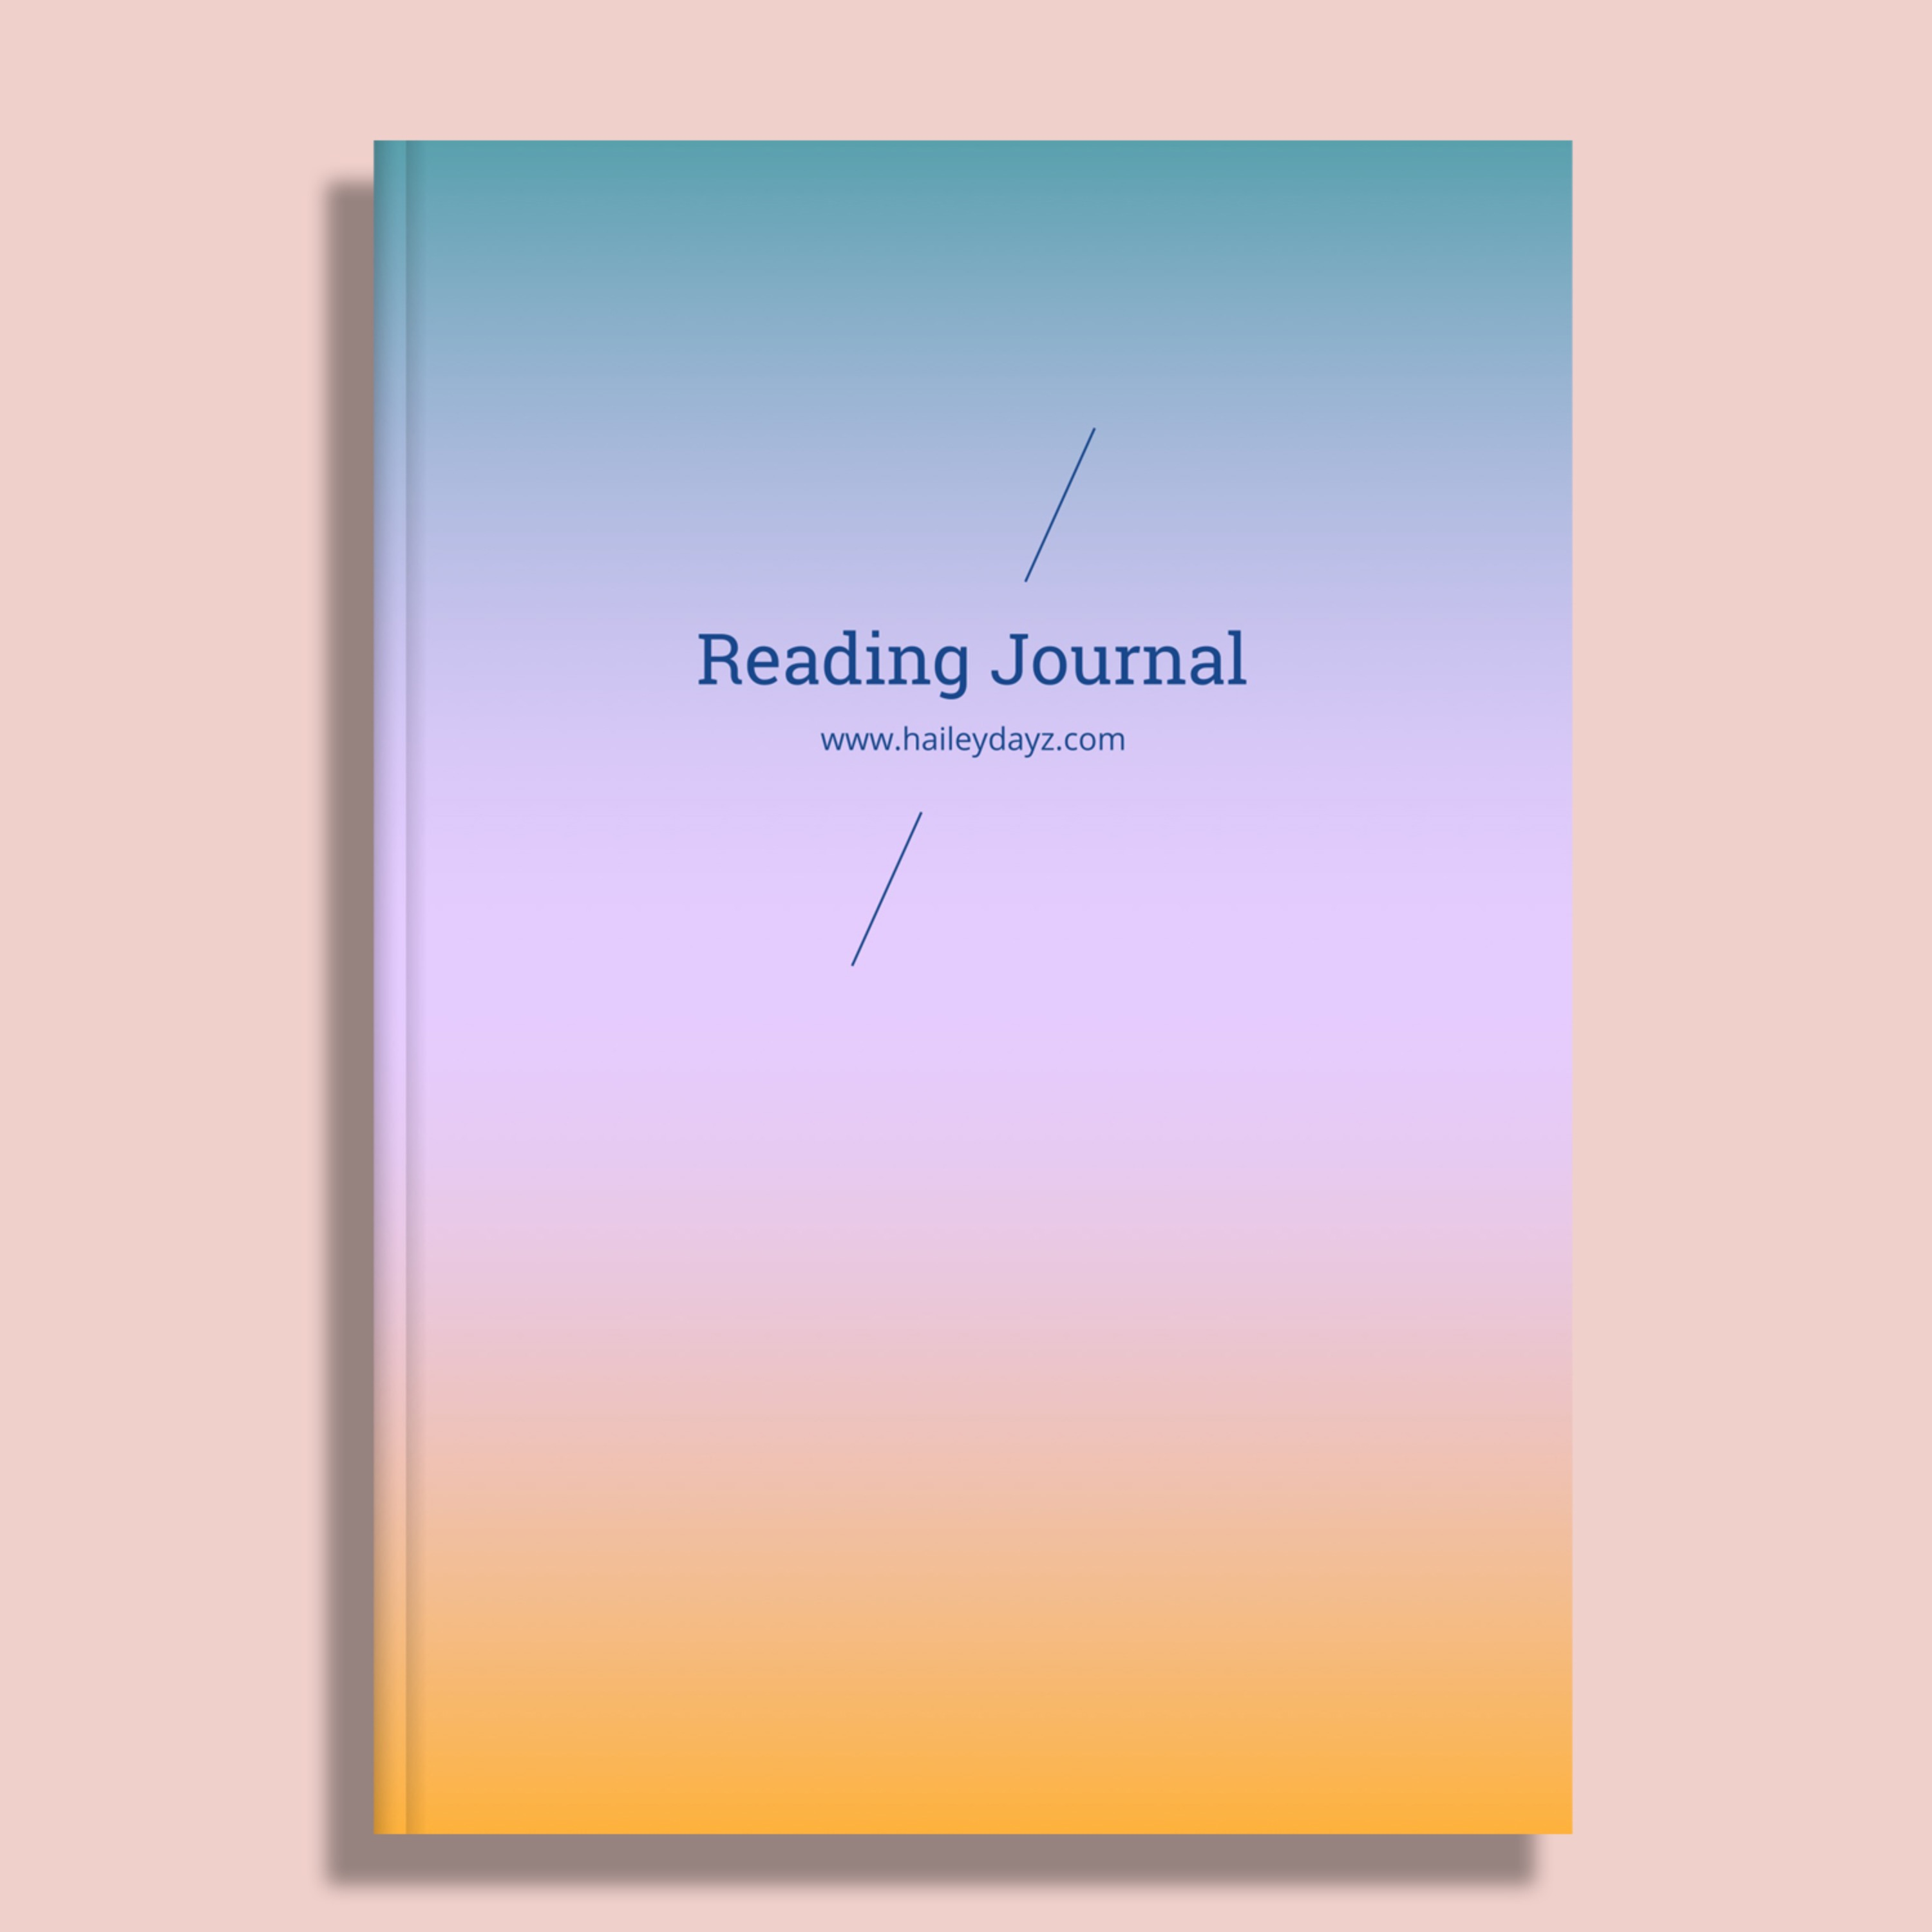 Reading Journal 리딩저널